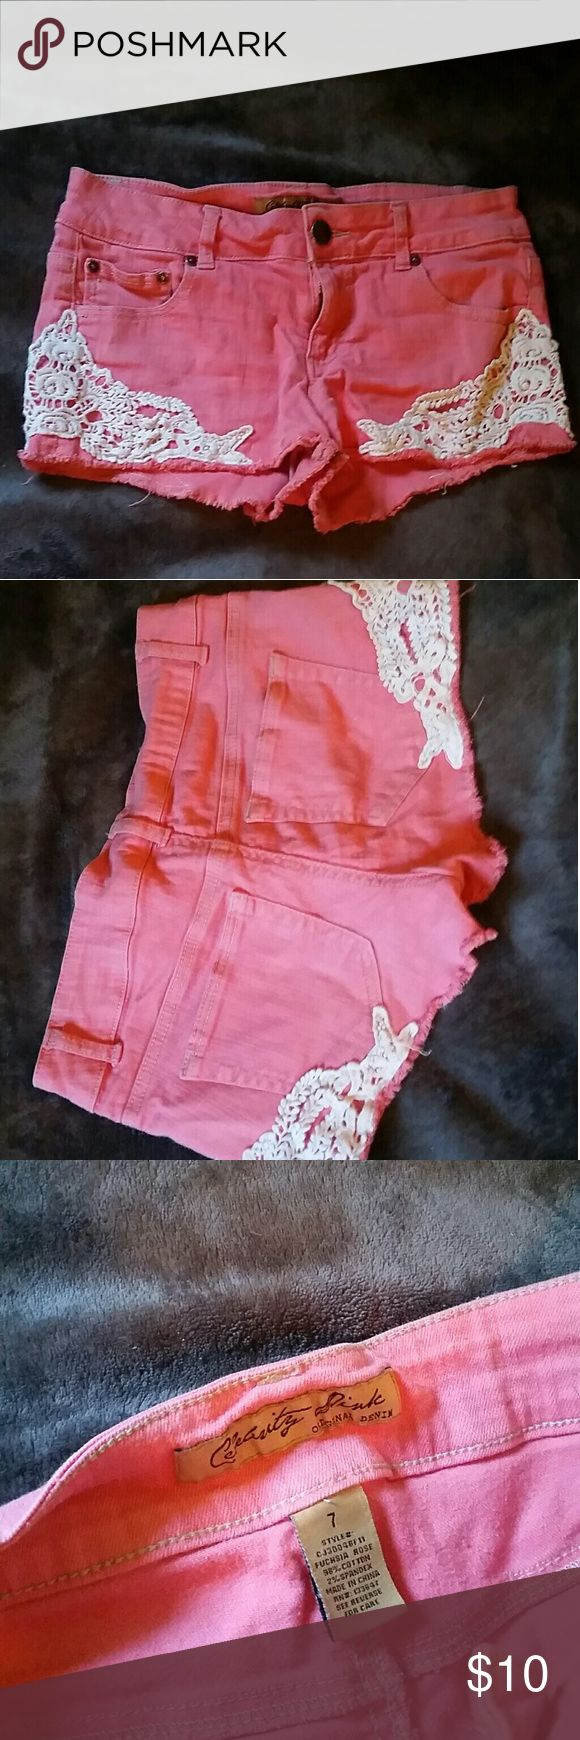 Pink & Lace Shorts Celebrity Pink Jean shorts size 7 excellent condition barely worn, no flaws :) PRICE IS FIRM UNLESS BUNDLED :) IF YOU HAVE ANY QUESTIONS FEEL FREE TO ASK :) Celebrity Pink Shorts Jean Shorts